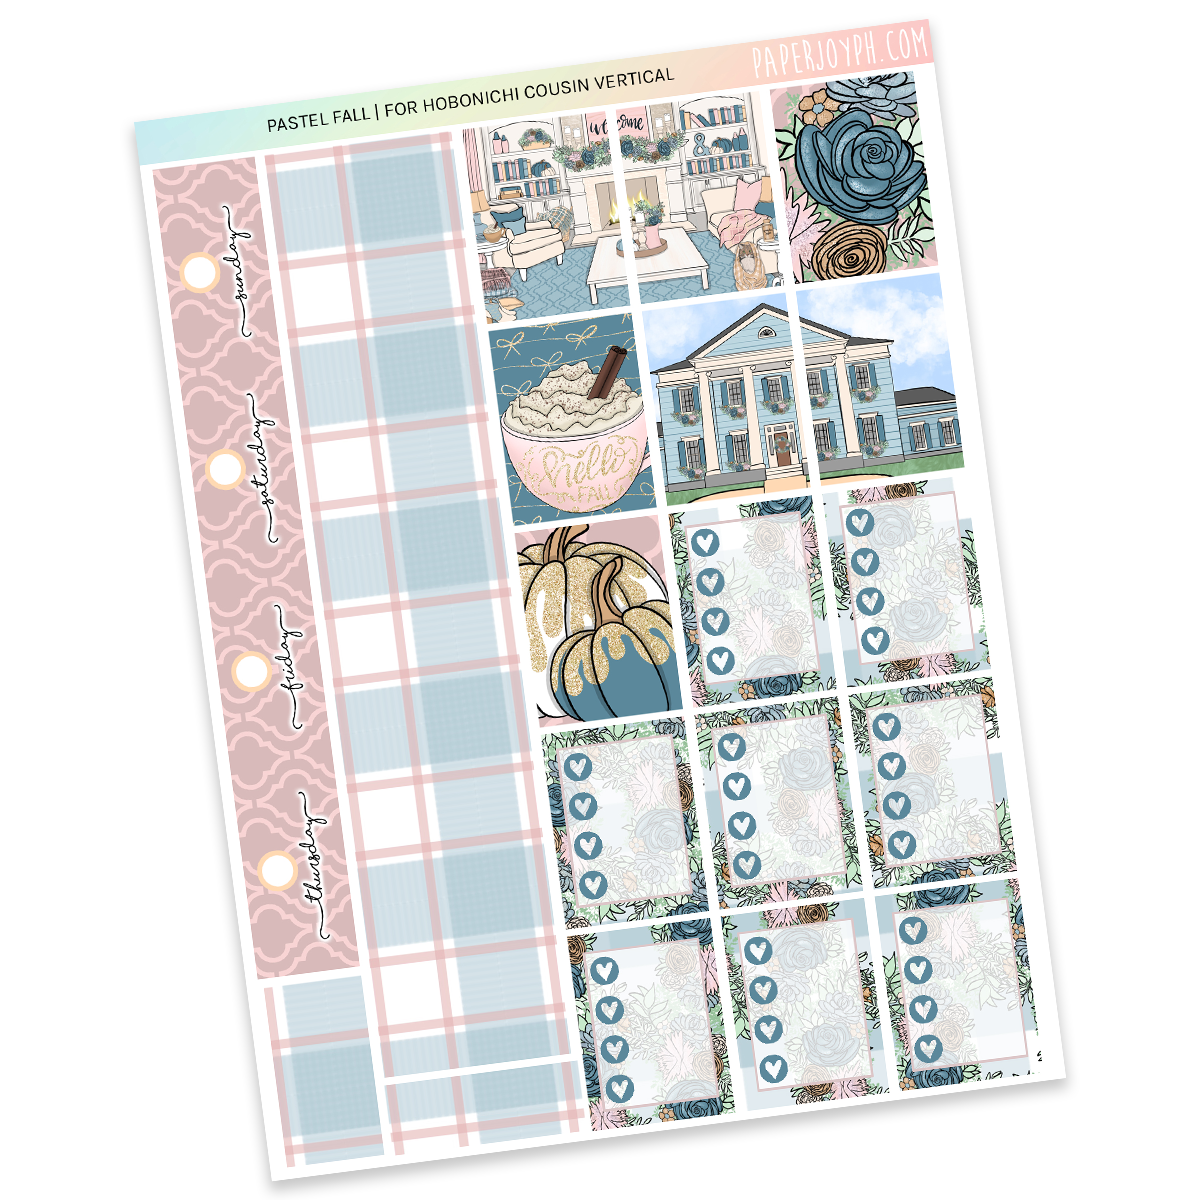 HOBONICHI COUSIN | VERTICAL STICKER KIT | Pastel Fall